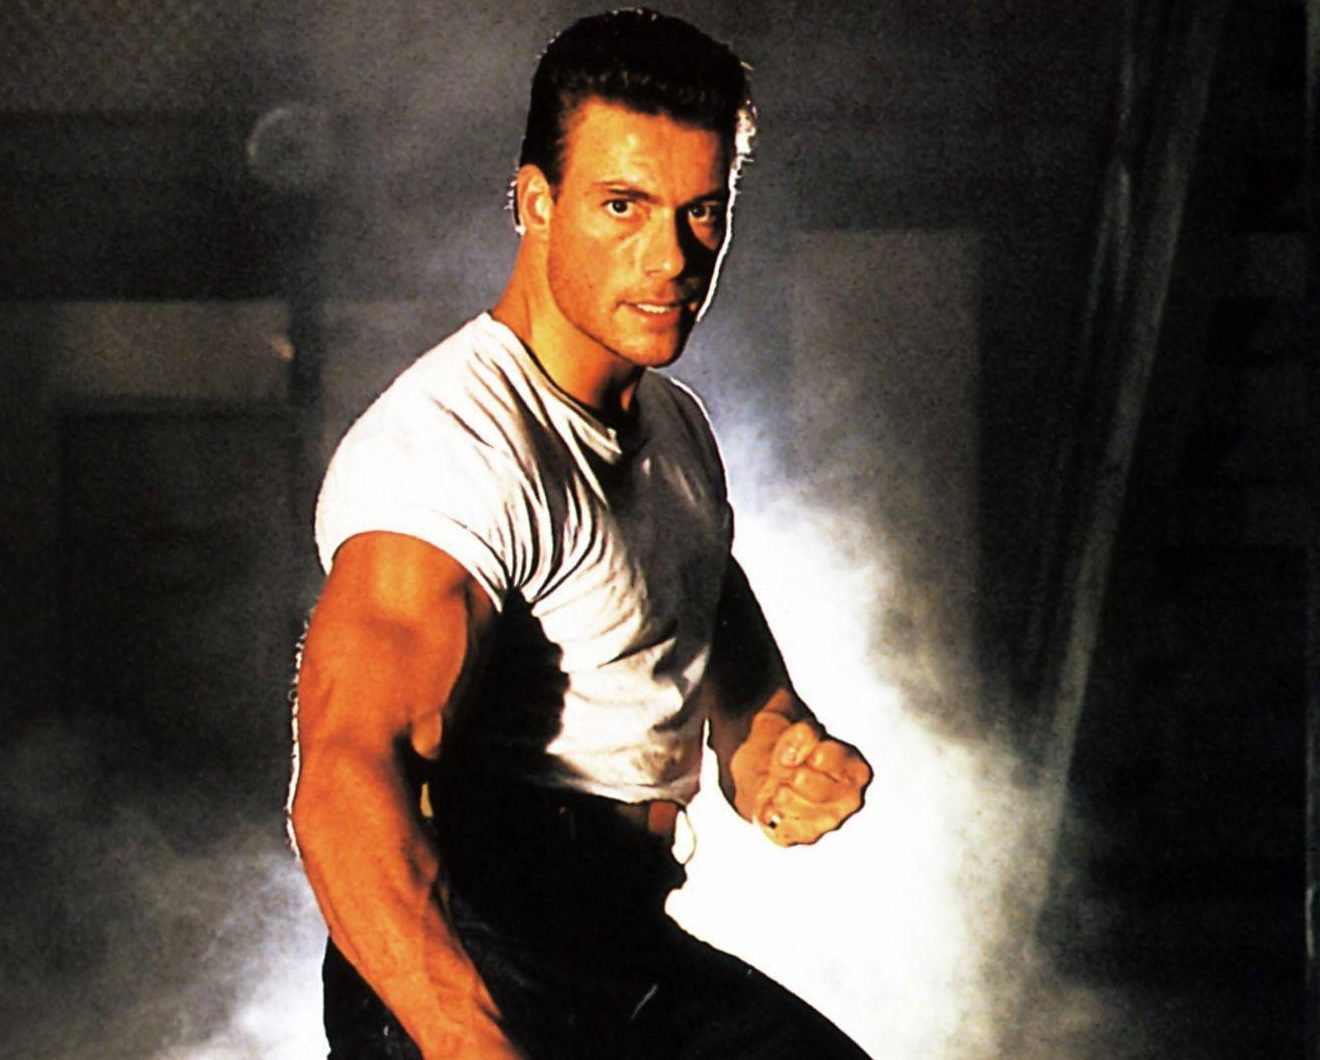 wp2044097 e1621851390954 25 Things You Probably Didn't Know About Jean-Claude Van Damme